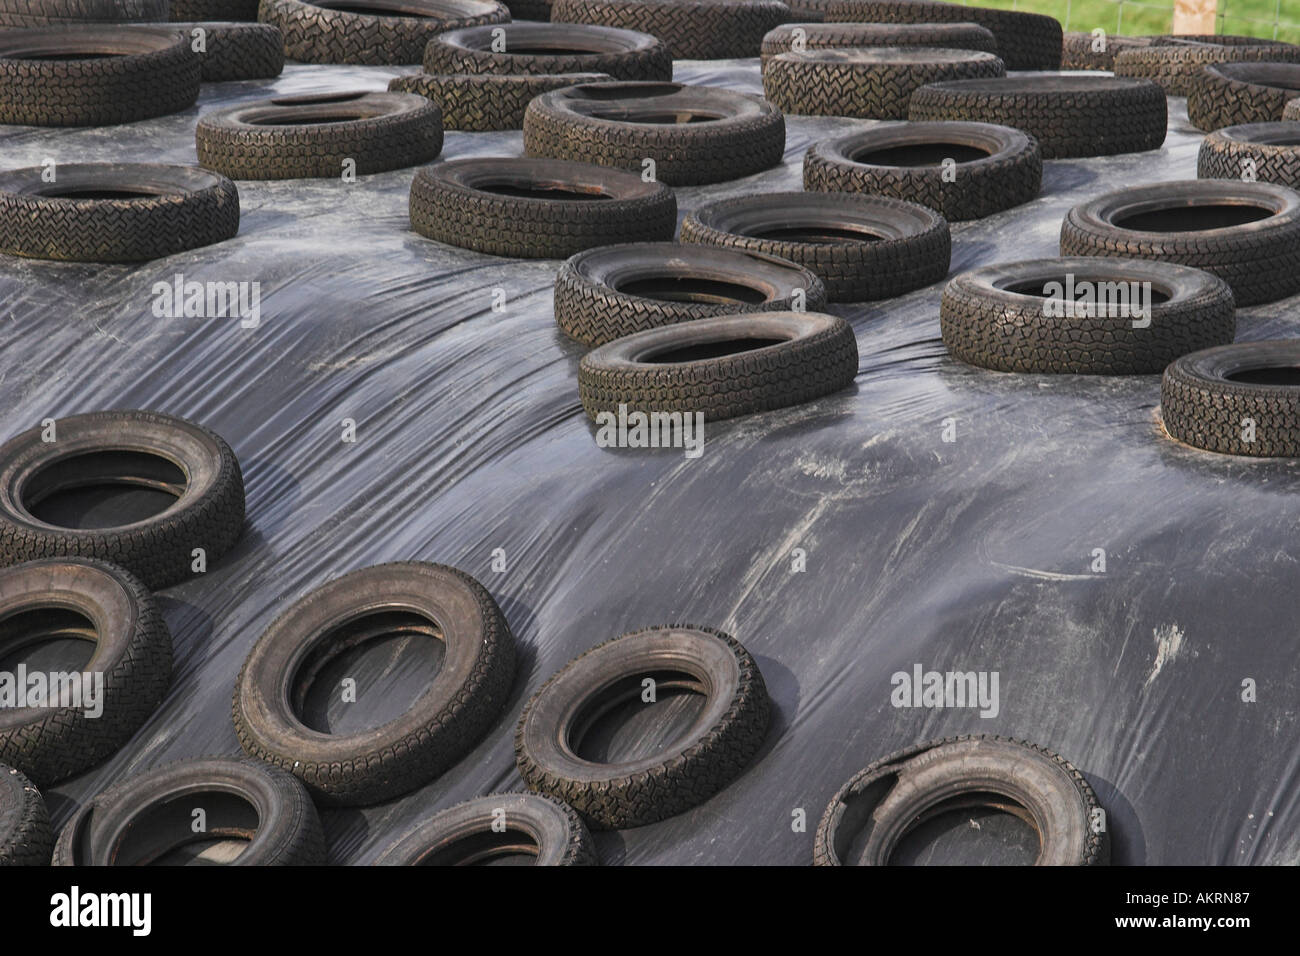 Old Car Tyres Being Used In Farmyard Uk Stock Photo 4917638 Alamy